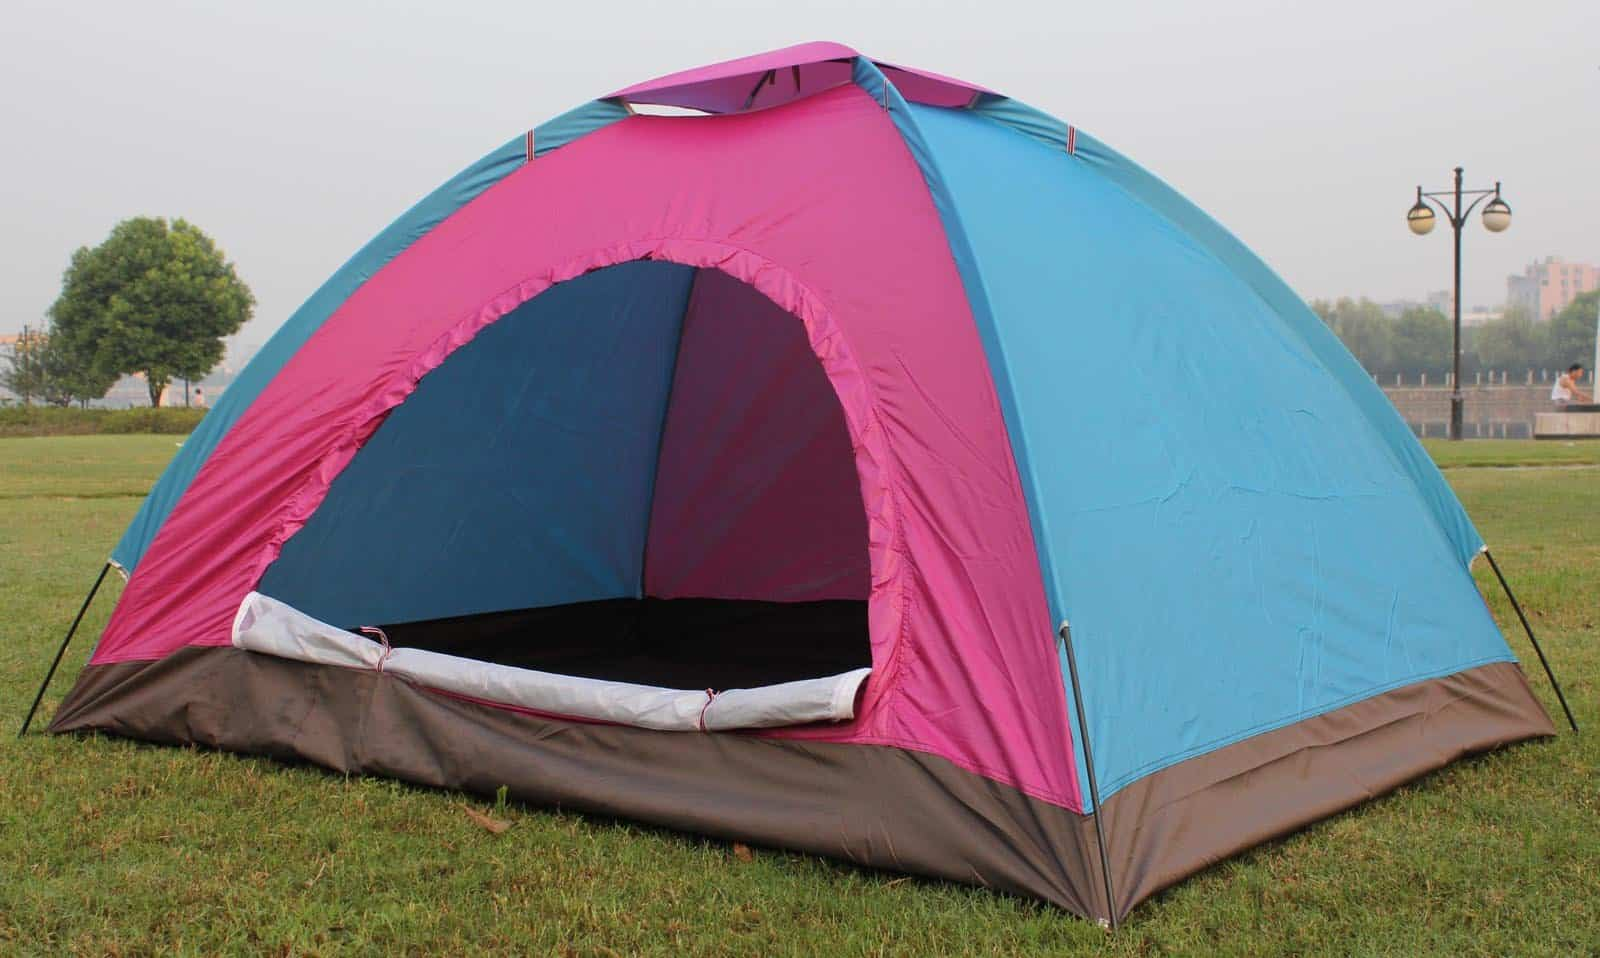 Best 2 Person Tent For 2018 : tents 10 man - memphite.com